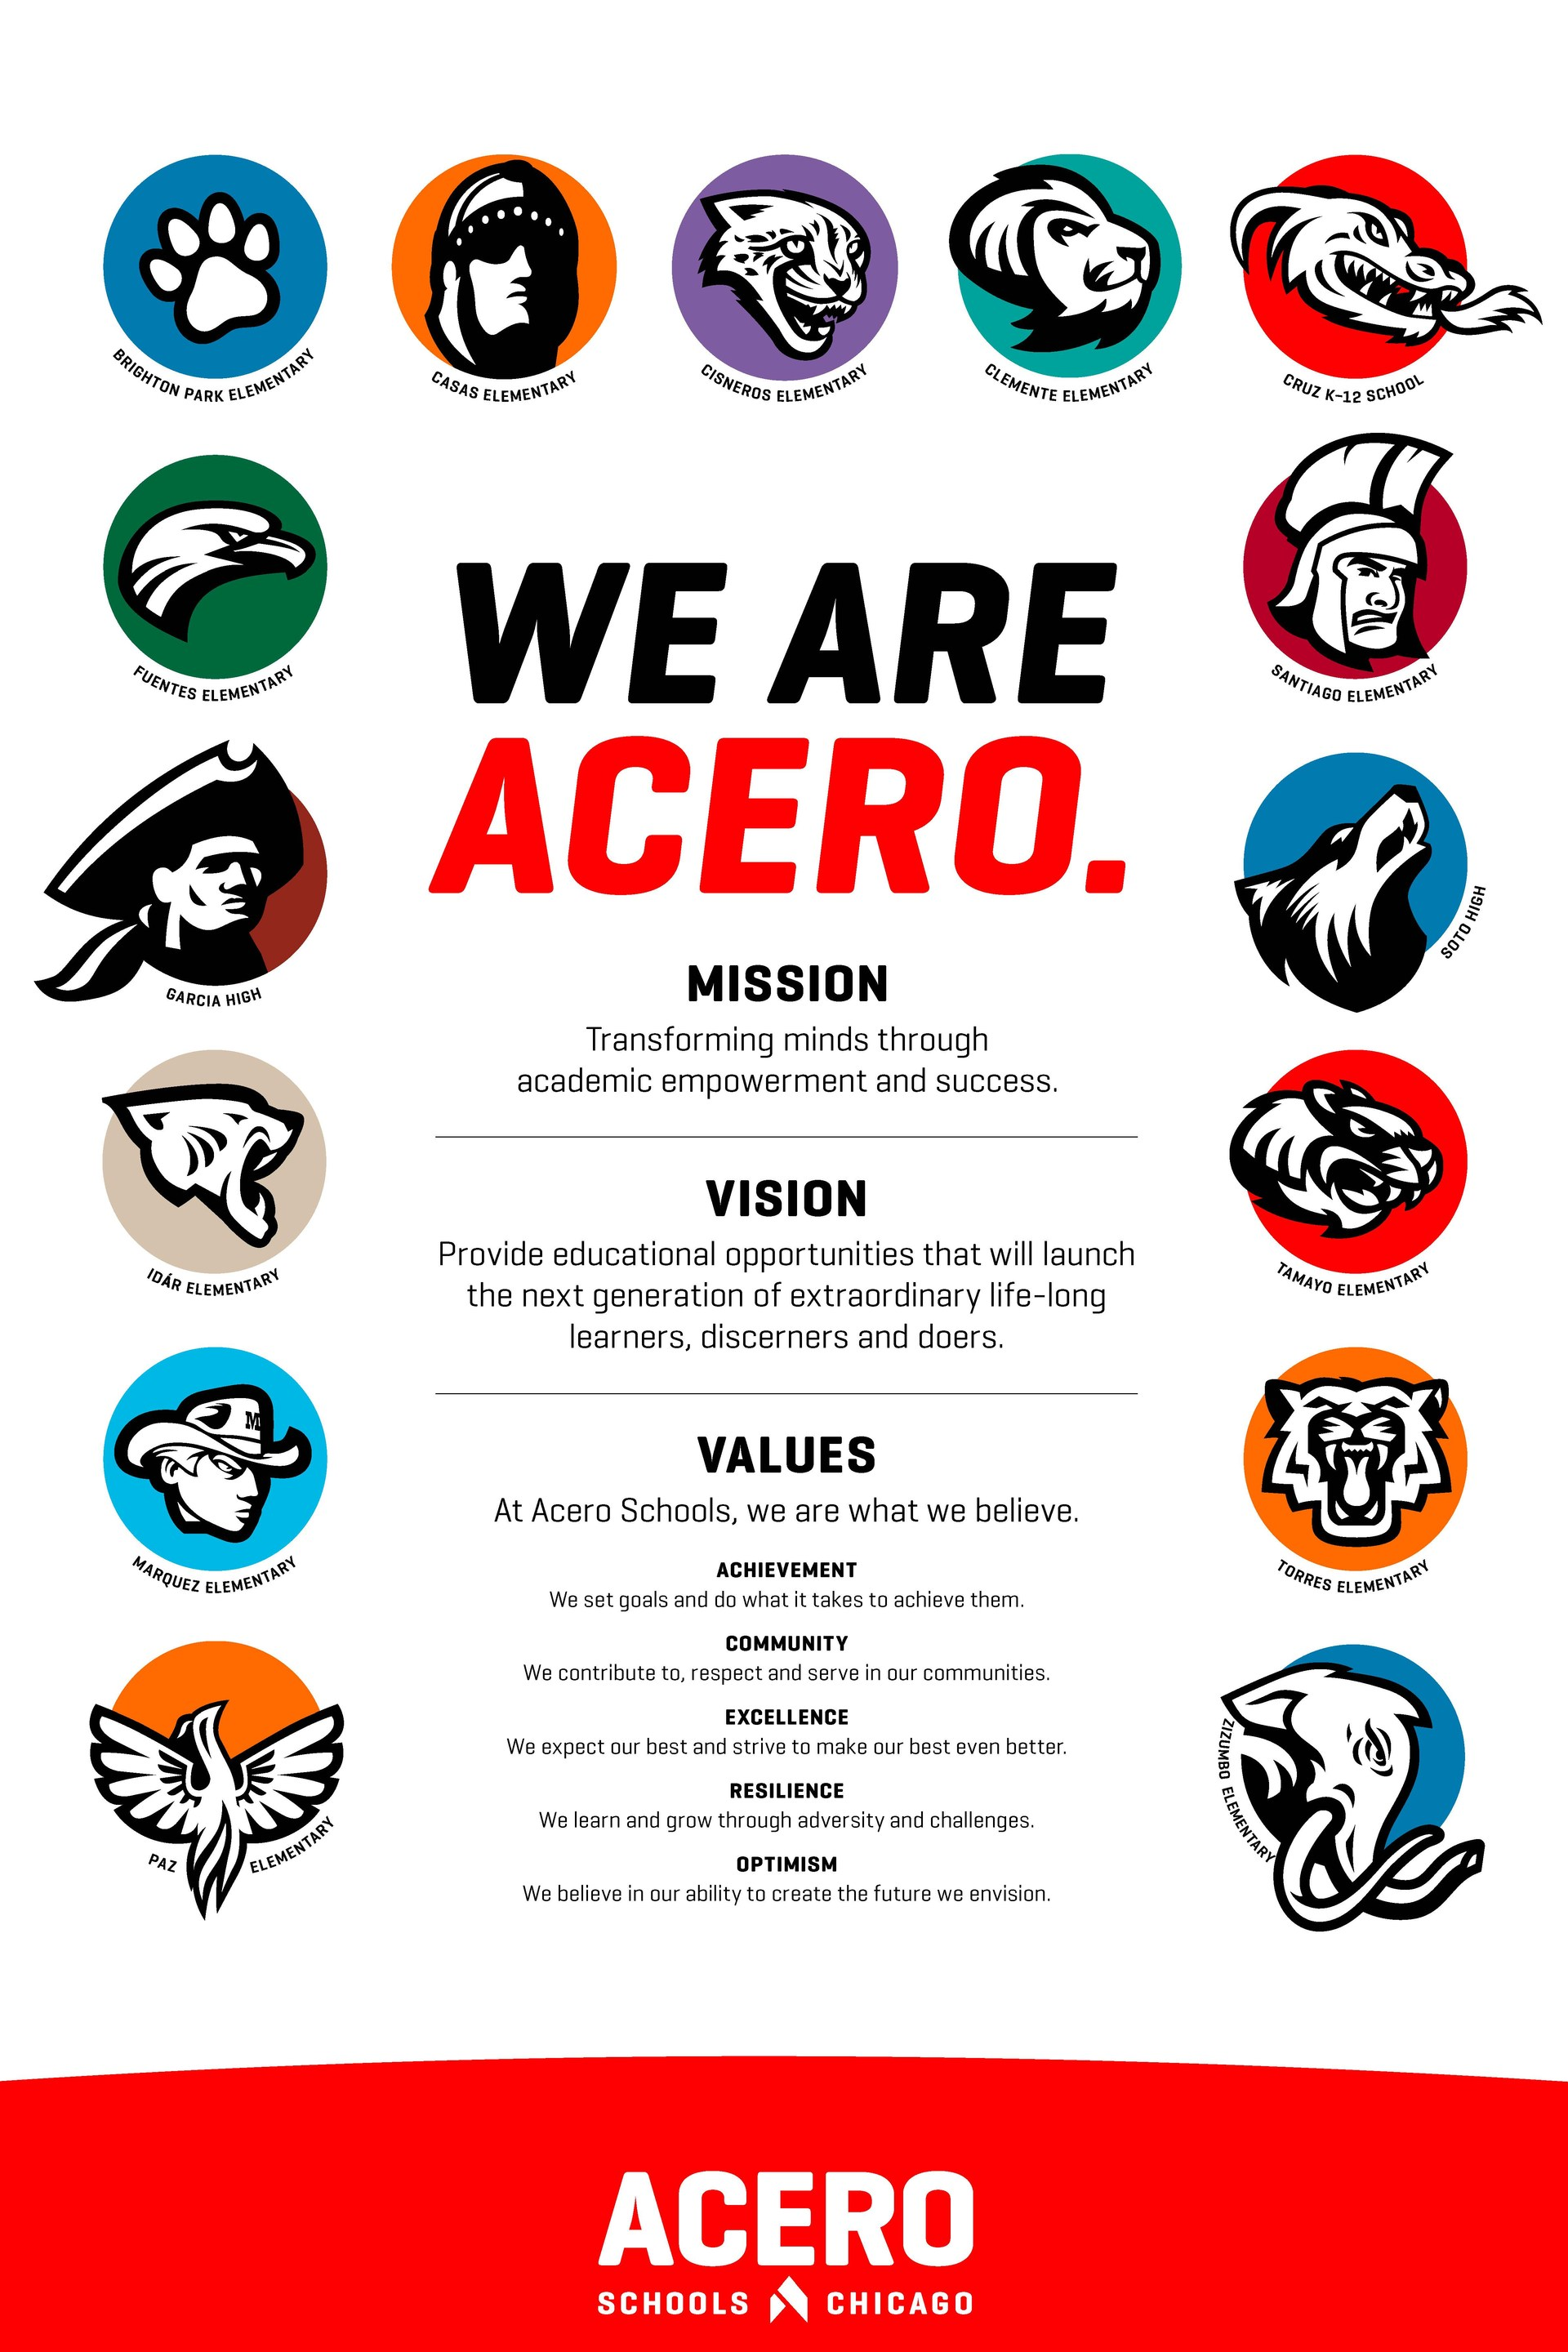 We Are Acero. Our Mission is transforming minds through academic empowerment and success.  Our Vision is providing educational opportunities that will launch the next generation of extraordinary life-long learners, discerners and doers. At Acero Schools, we are what we believe. Achievement - We set goals and do what it takes to achieve them. Community - We contribute to, respect and serve in our communities. Excellence - We expect our best and strive to make our best even better. Resilience - We learn and grow through adversity and challenges. And Optimism - We believe in our ability to create the future we envision.  We are Acero.